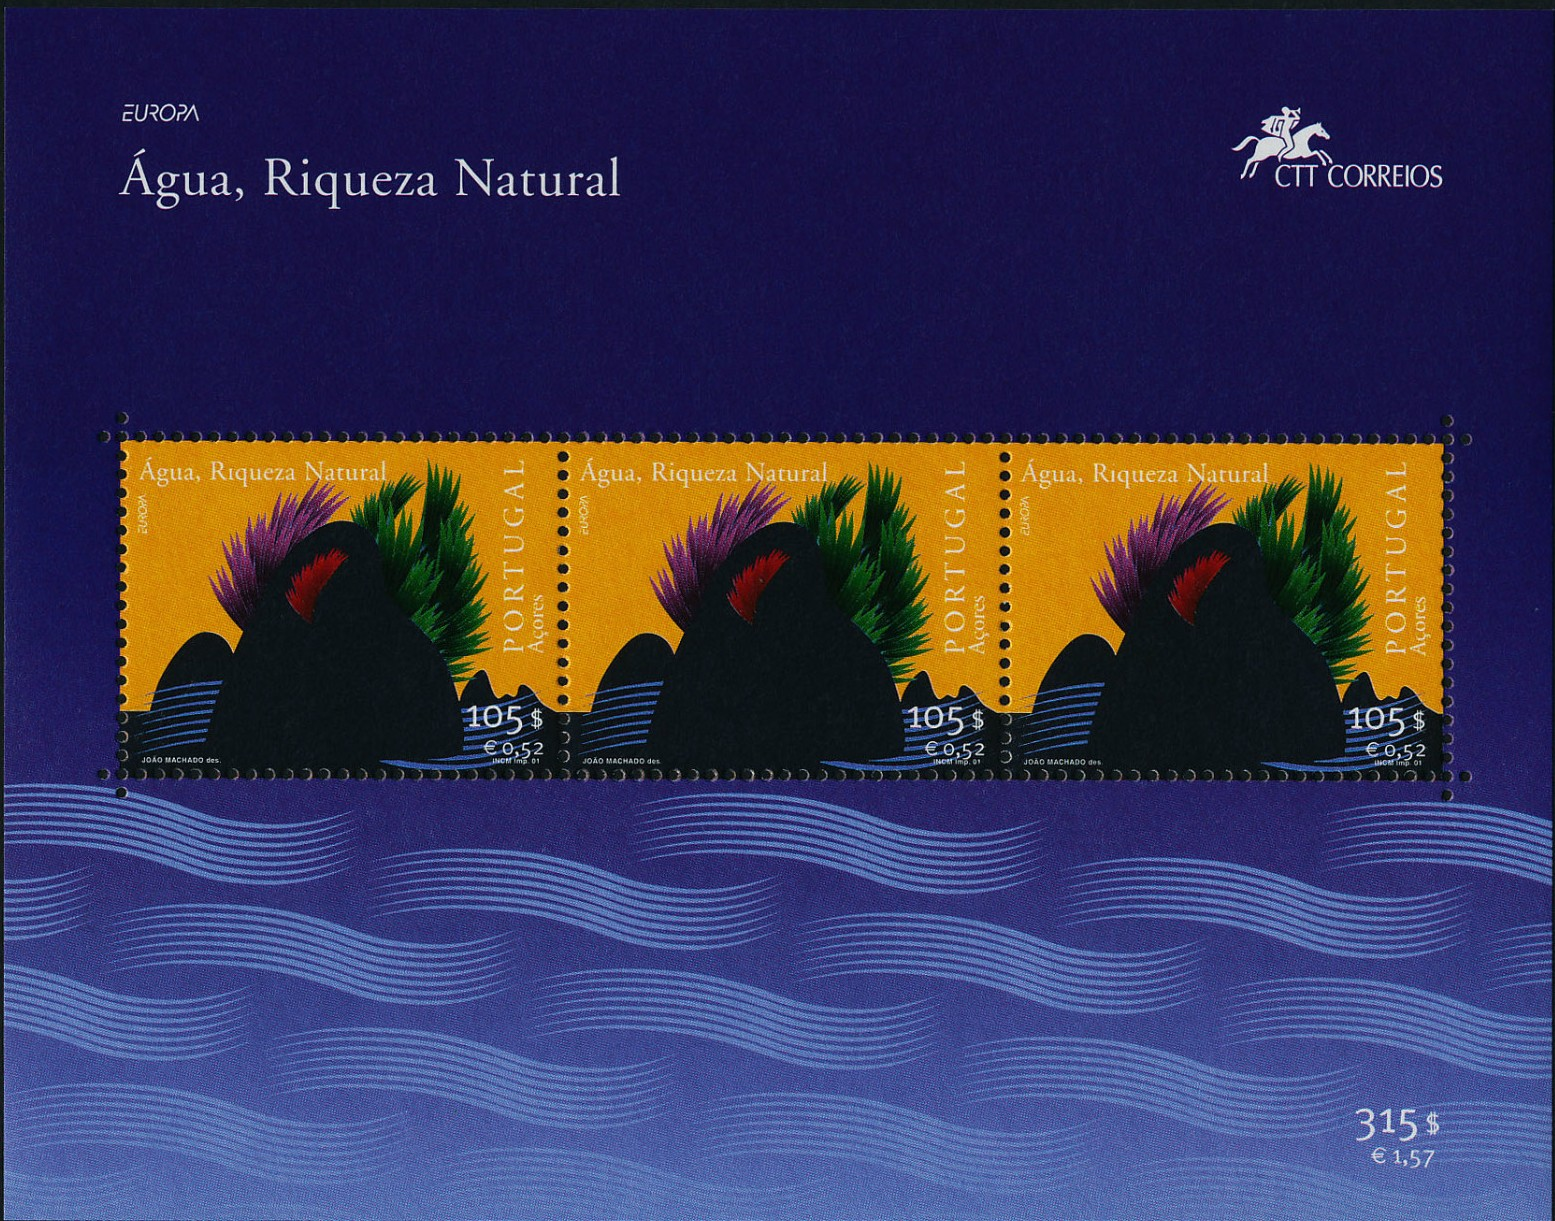 Azores 2001 EUROPA - Water, natural wealth c.jpg